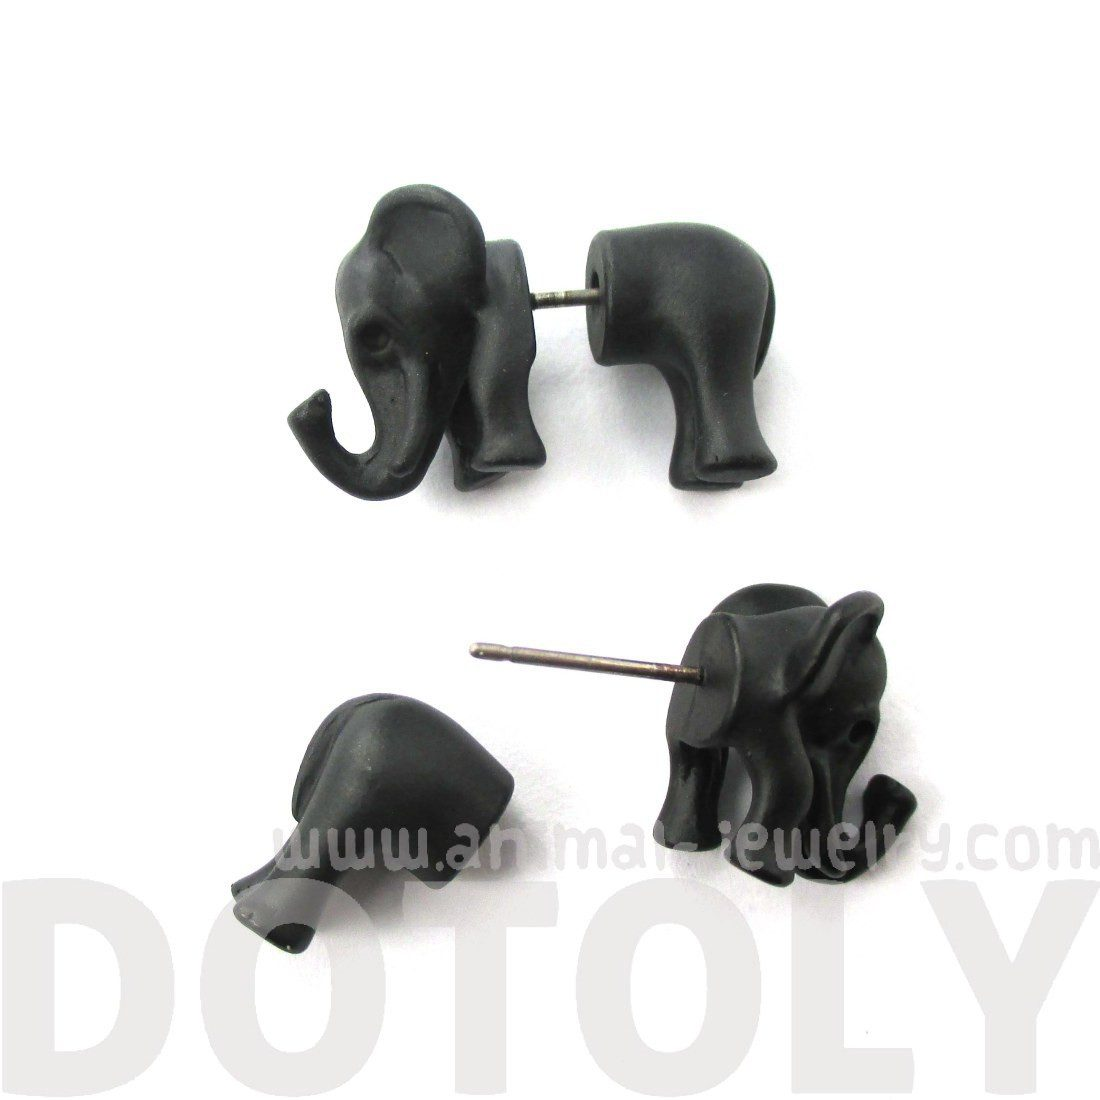 3D Elephant Shaped Animal Front and Back Stud Earrings in Black